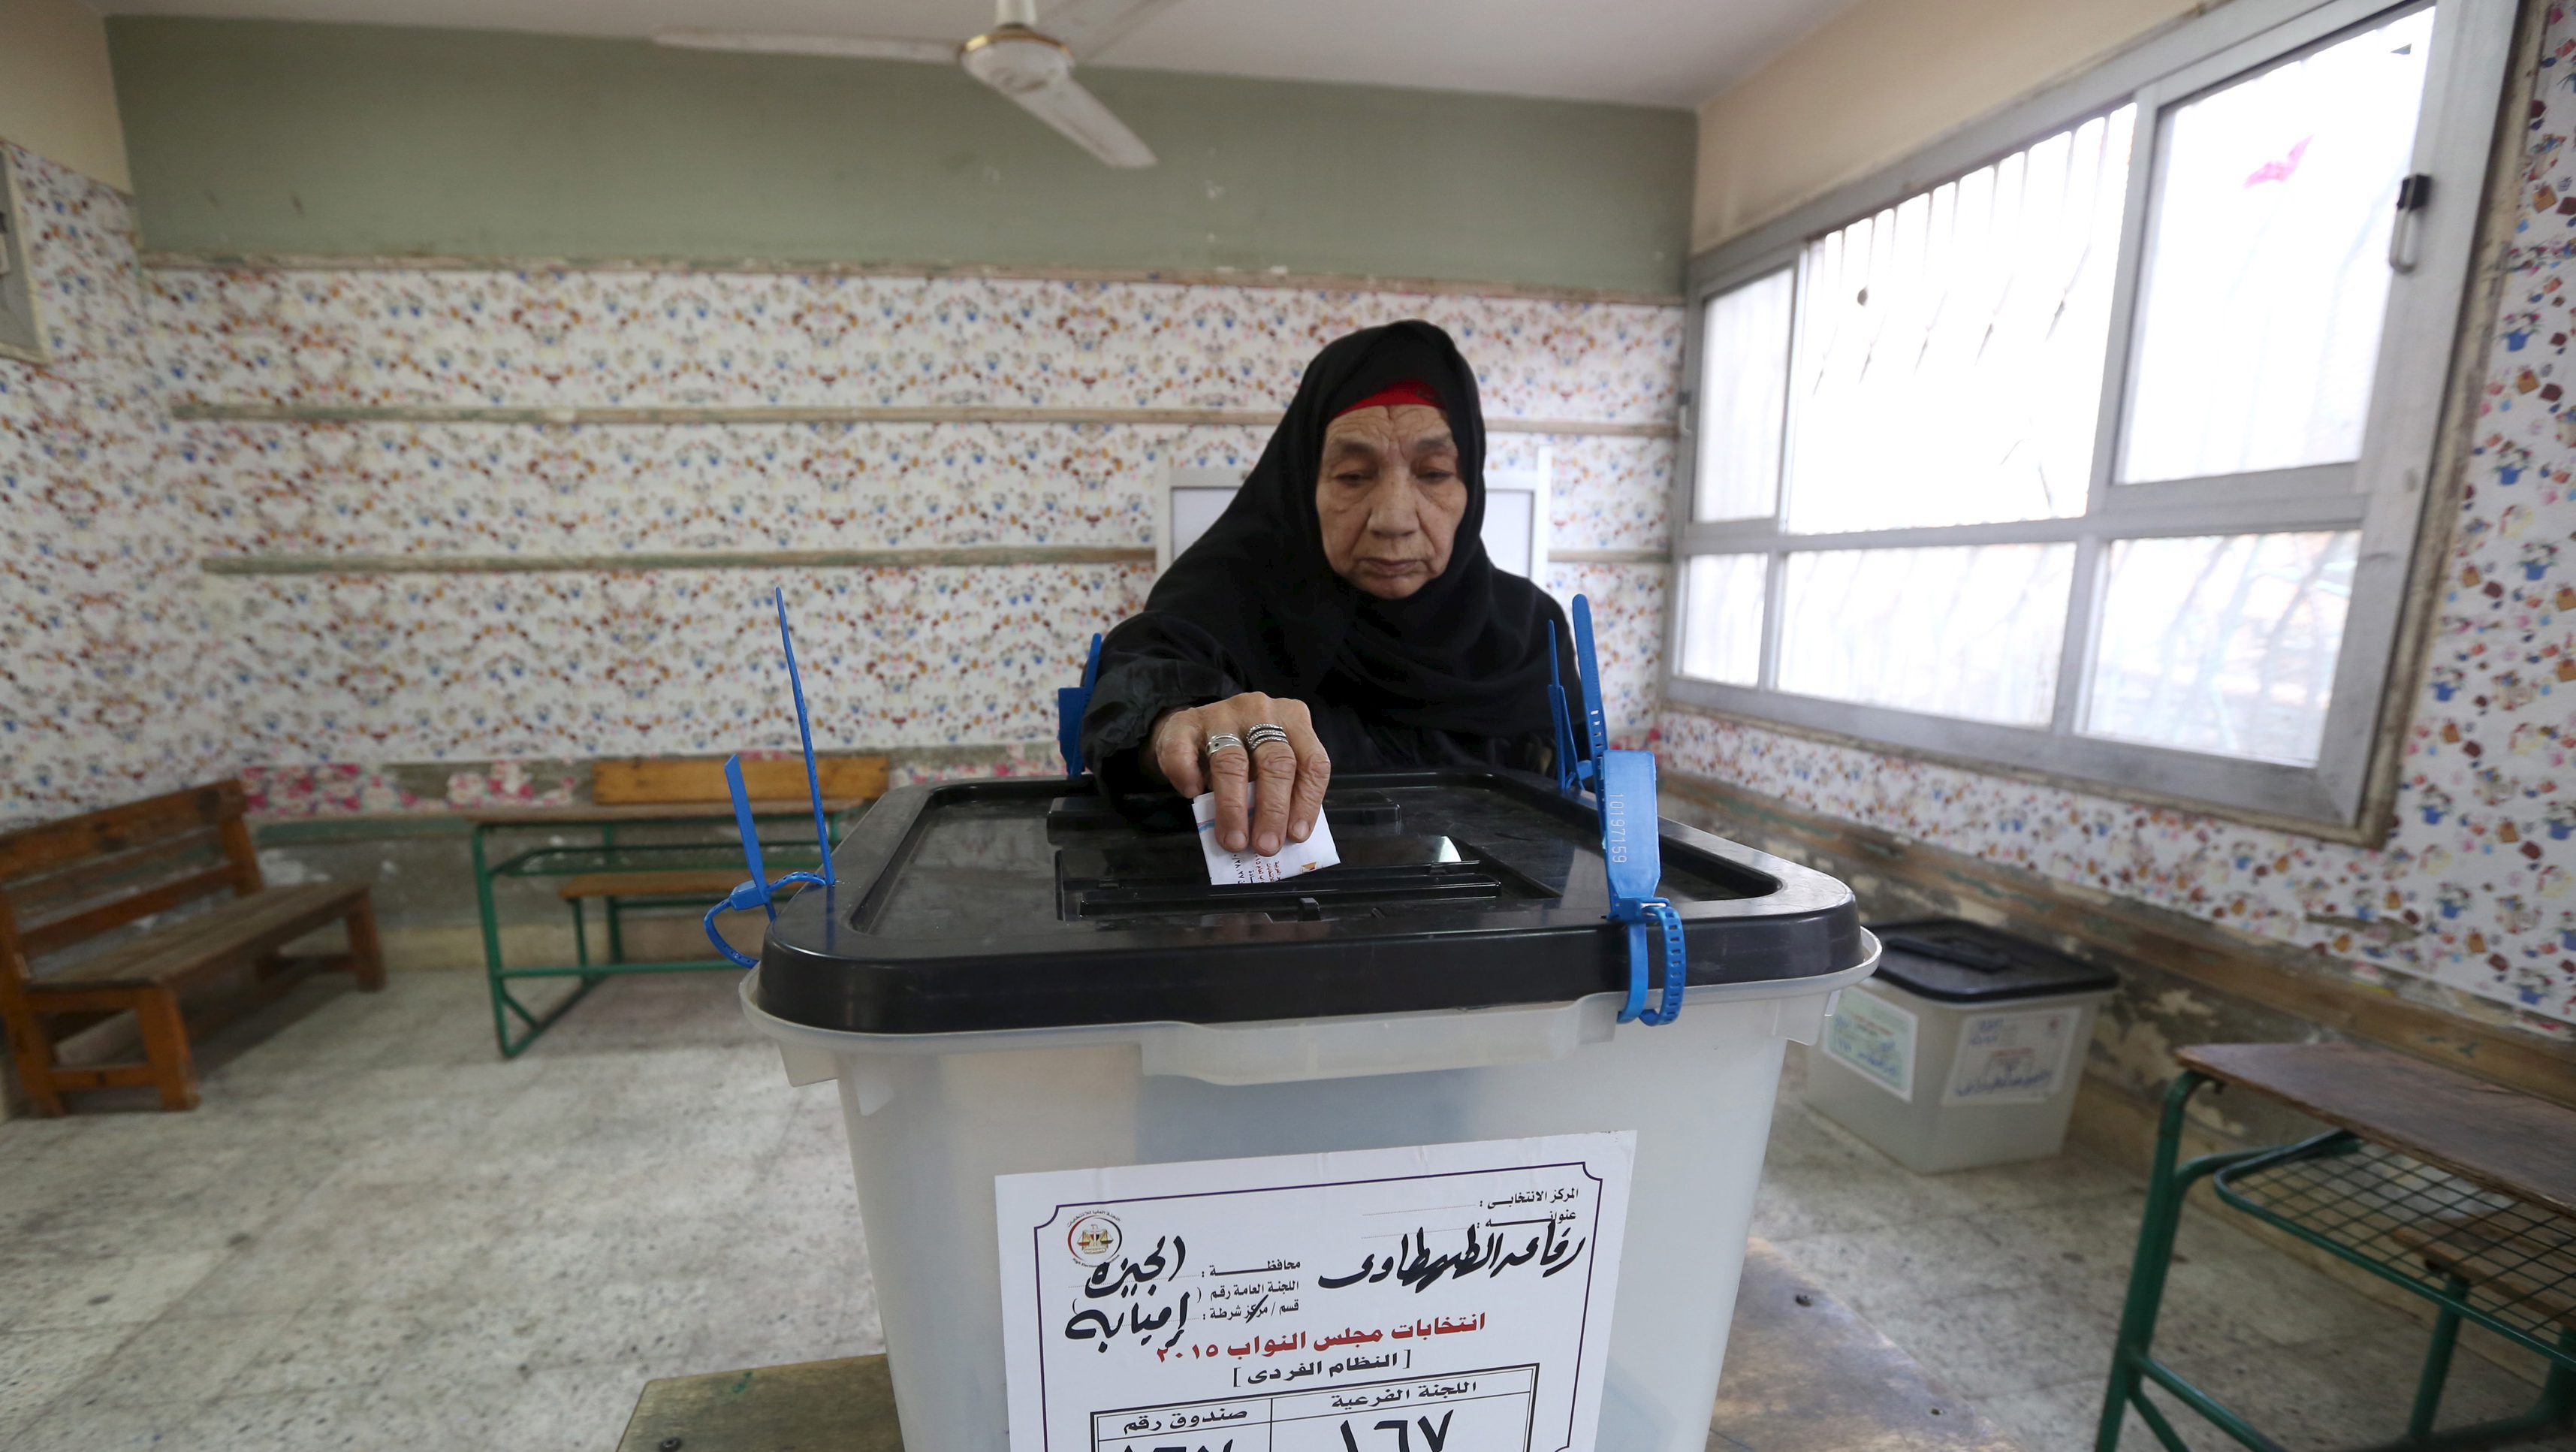 A woman casts her vote at a polling station during the run-off to the first round of parliamentary election in Imbaba, Giza governorate, Egypt, October 27, 2015. Egyptians voted on Tuesday in run-off elections for more than 200 parliamentary seats in which no clear winner emerged in the first round of polls, with candidates loyal to President Abdel Fattah al-Sisi widely expected to dominate.